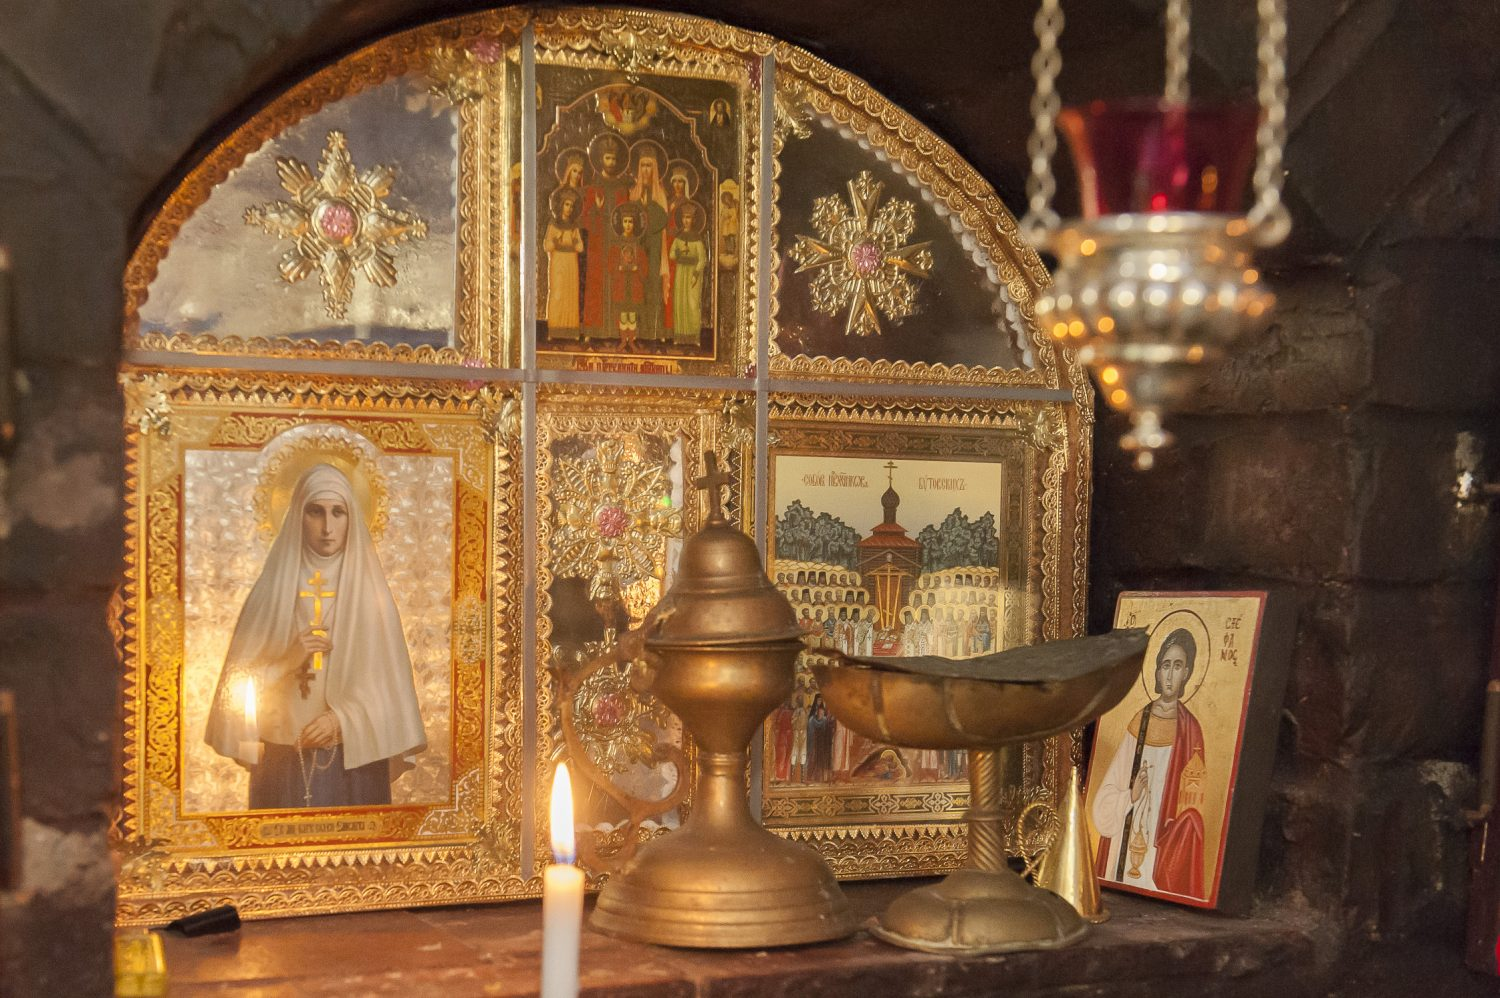 At the rear of the garden, Paul and Stephen have built a tiny and exquisite chapel in the Orthodox style, where mass is sometimes said. With painted angels on a rich blue ground, a wealth of icons, censers, reliquaries and a central Madonna and Child, it's so beautiful and surprising